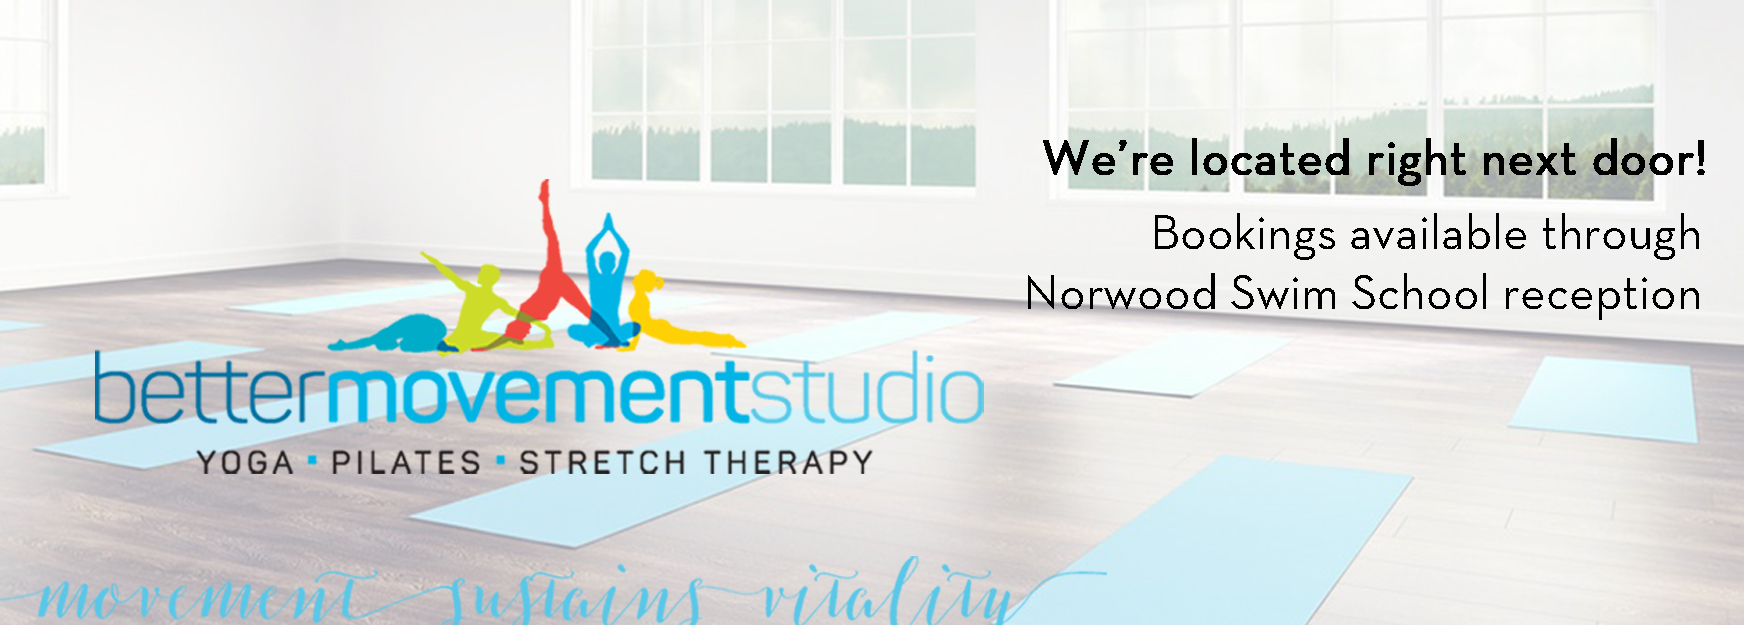 Better Movement Studio